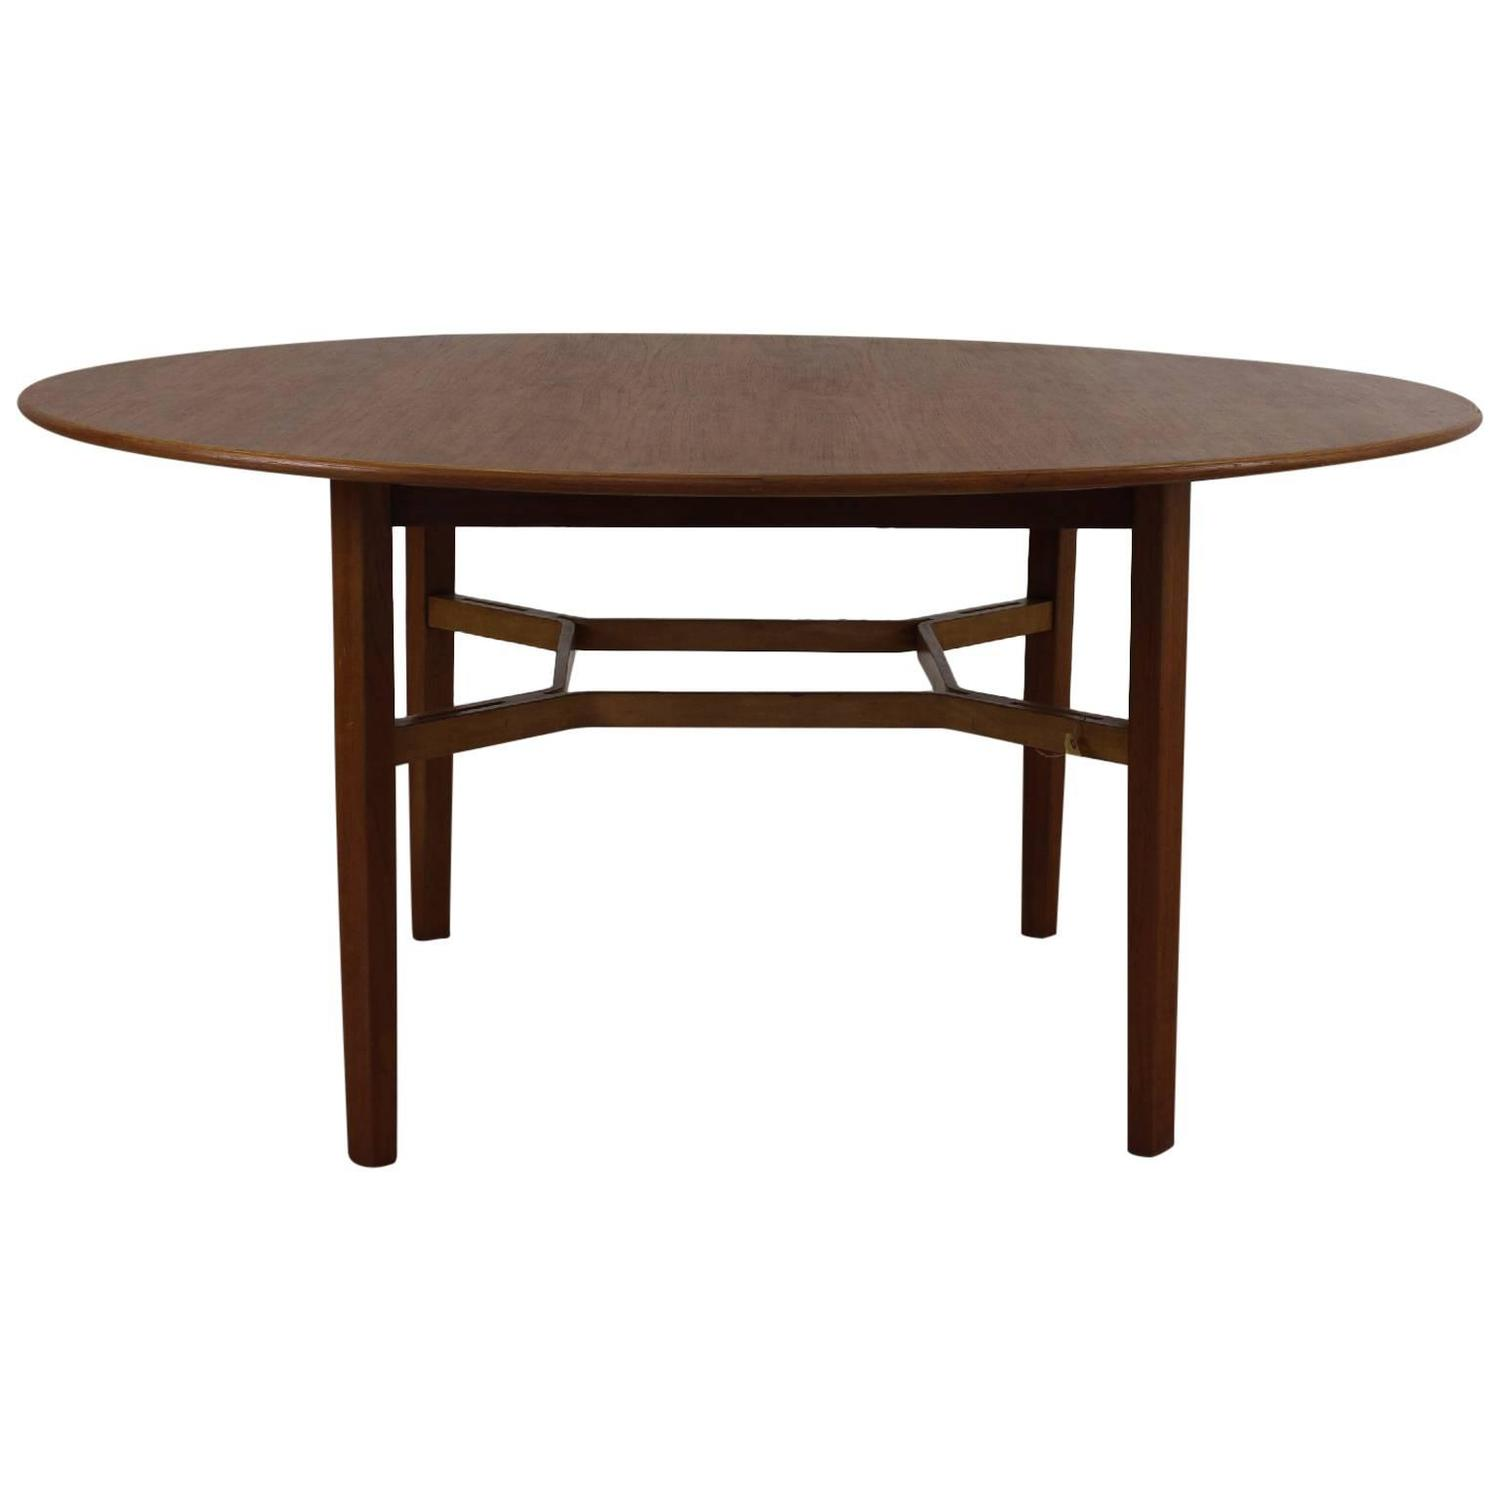 round card table and chairs retro for sale large designed by lewis butler knoll